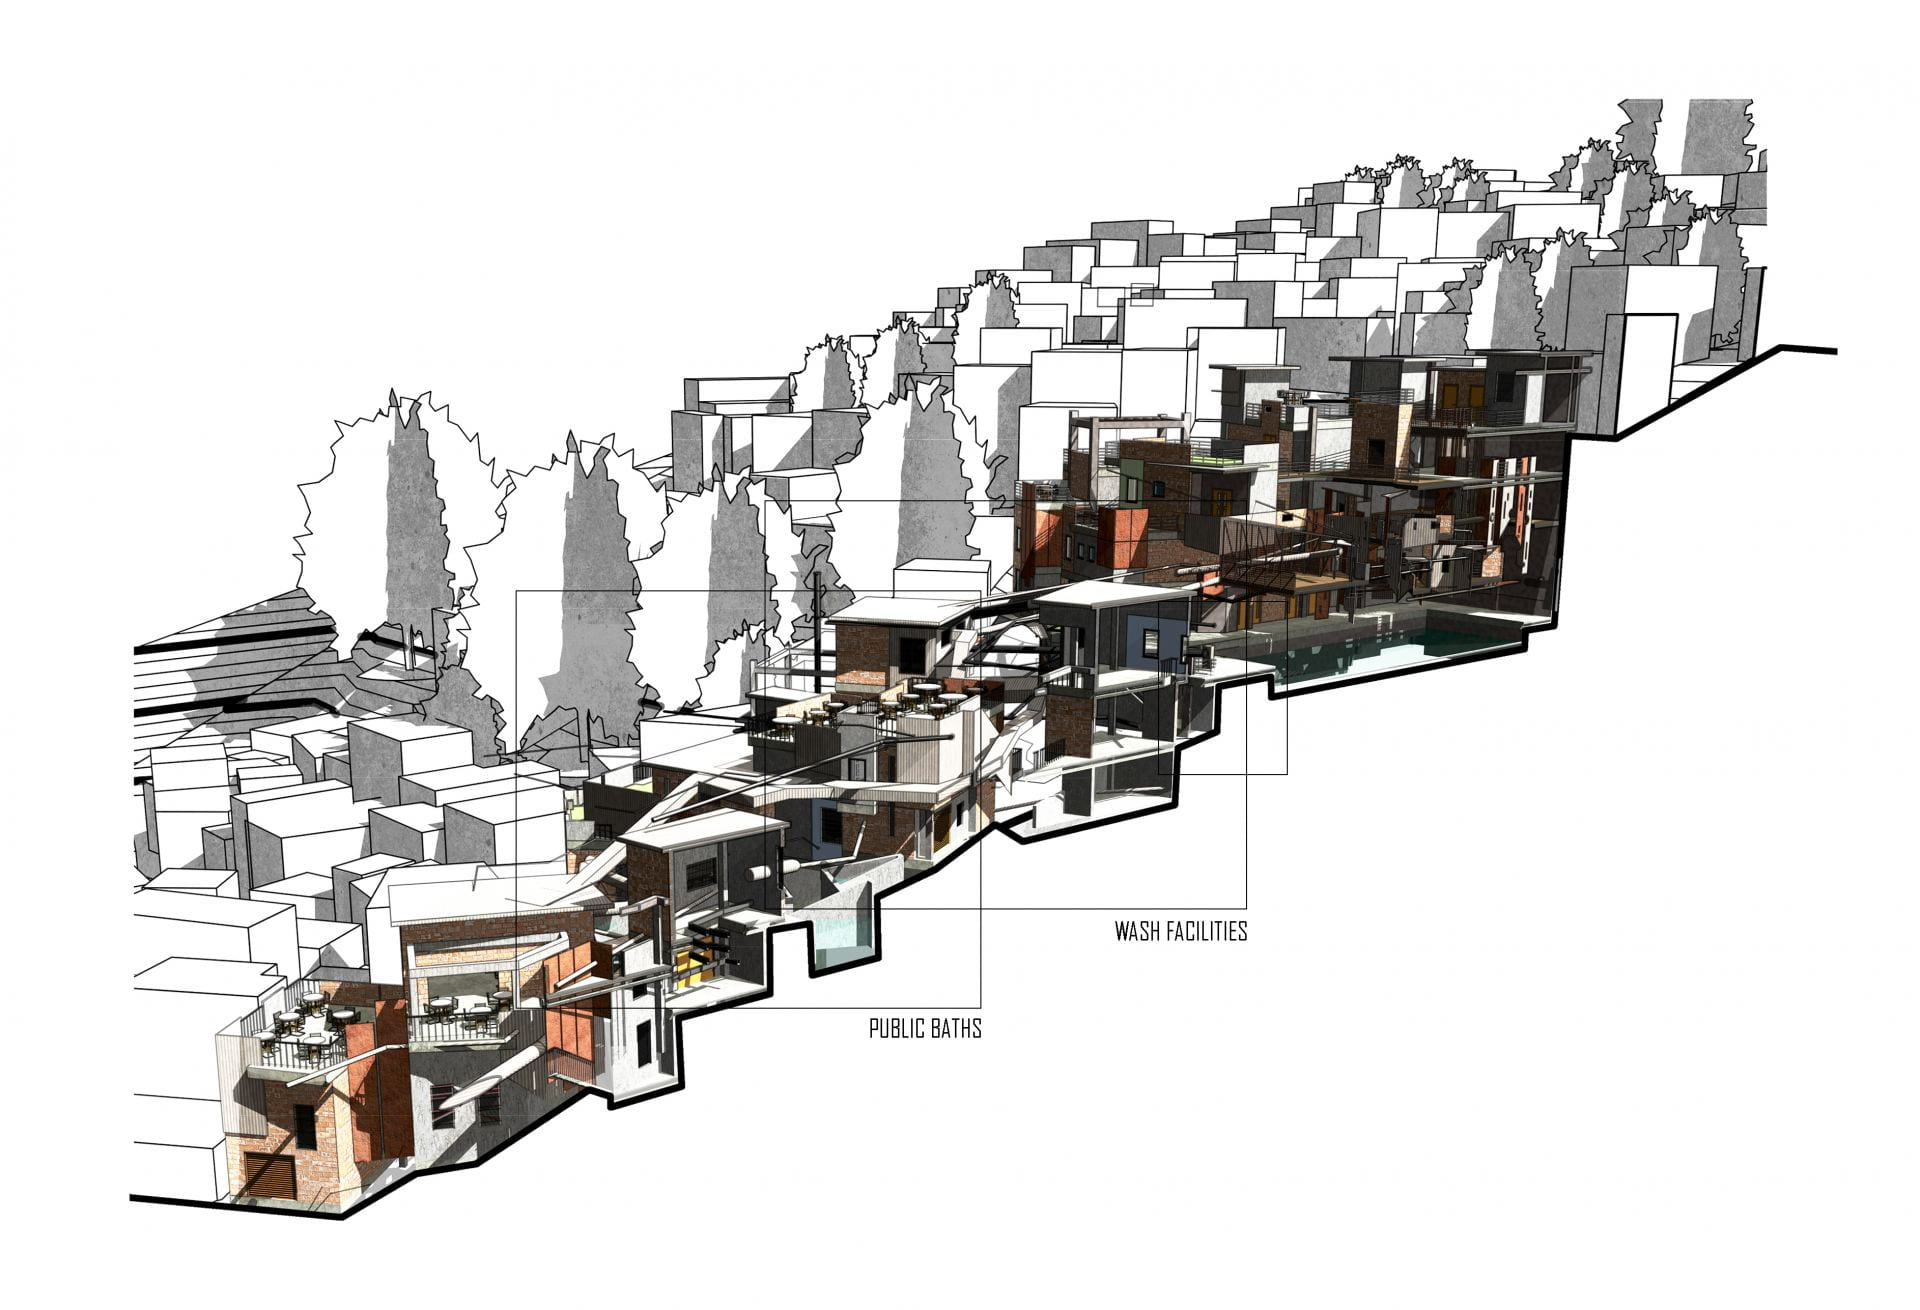 The development is deconstructed throughout the site to ensure the small scale repetitive architectural language of the favela is maintained.